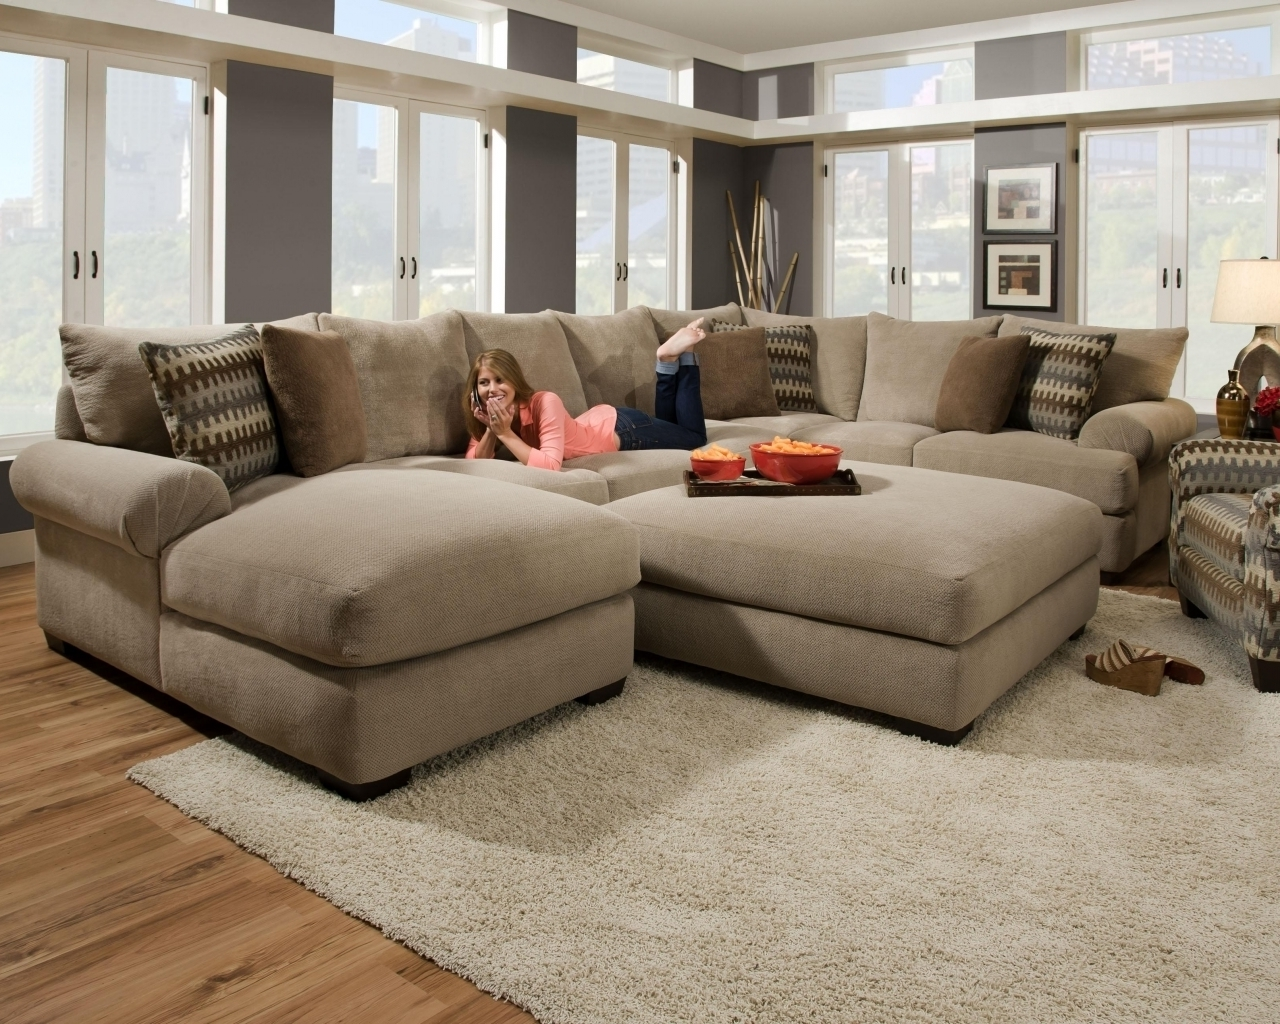 Sectional Sofas With Chaise Lounge And Ottoman With 2019 Amazing Sectional Sofa With Oversized Ottoman 59 For Your Best (View 13 of 20)